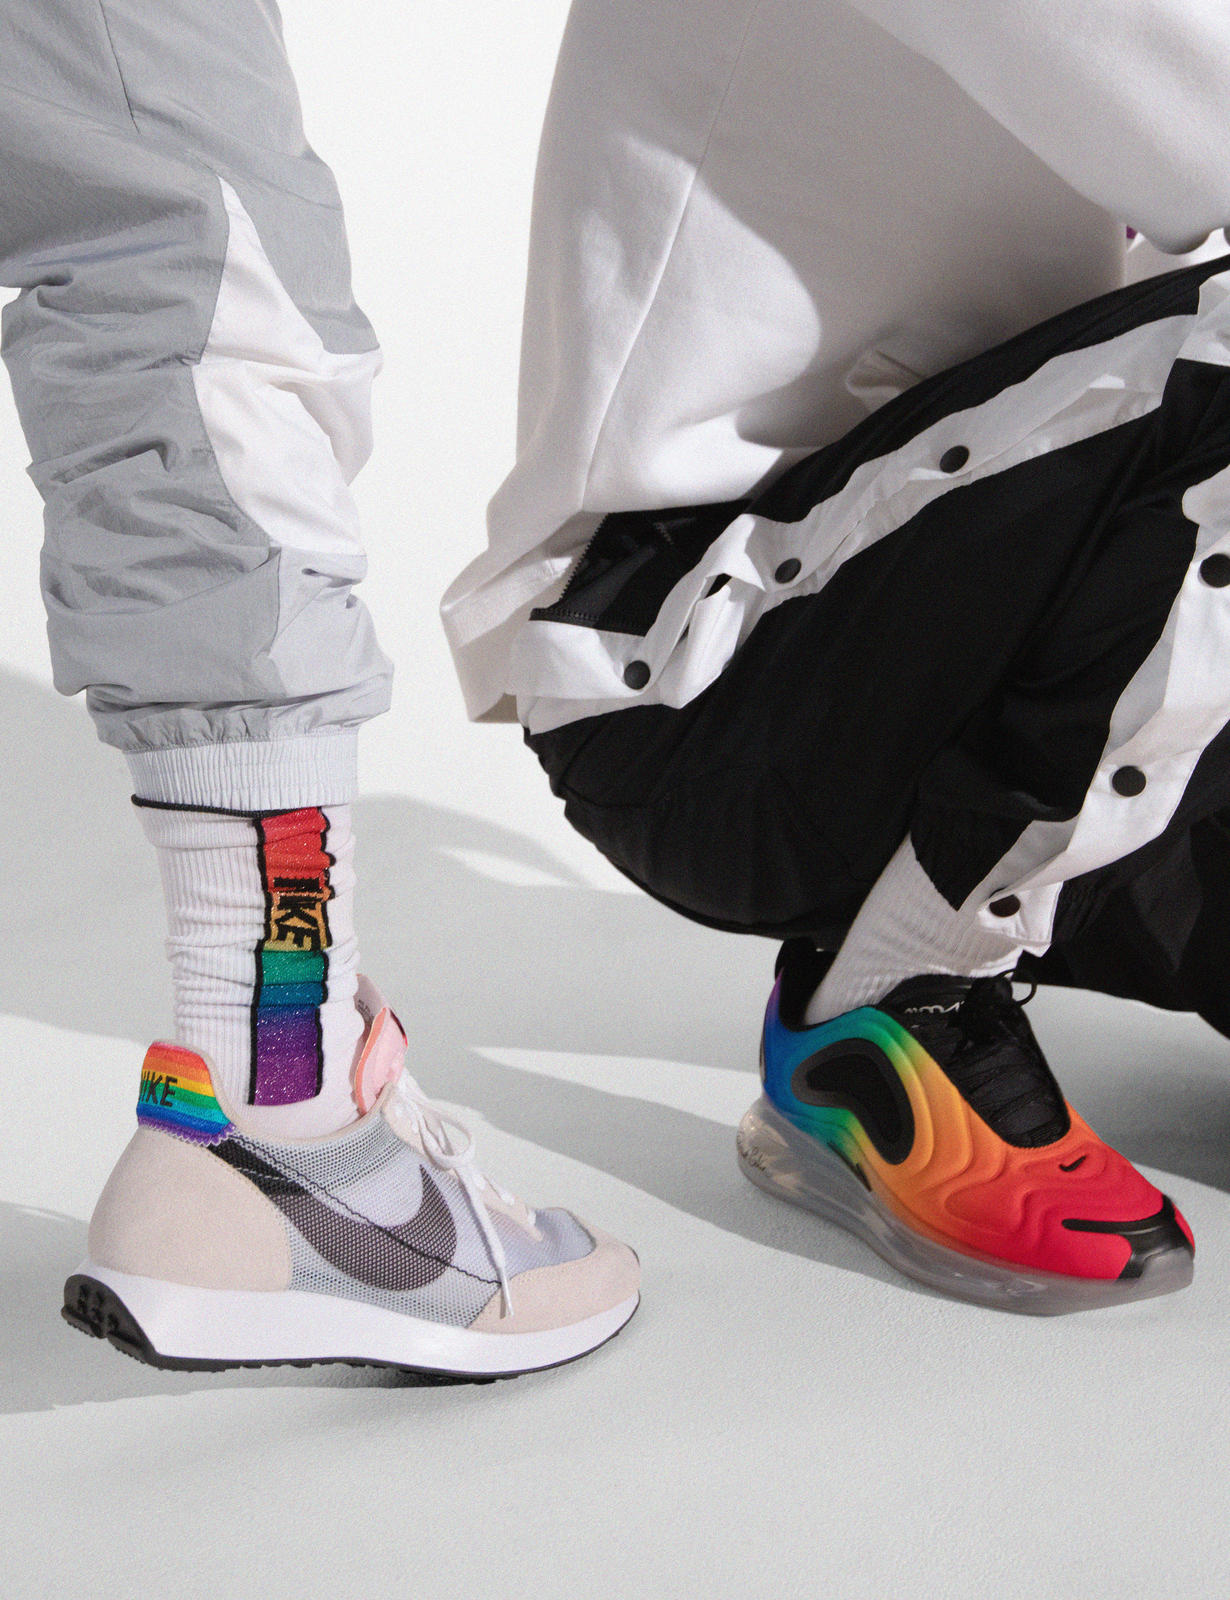 Nike-BETRUE-2019-Collection-21_88116.jpg